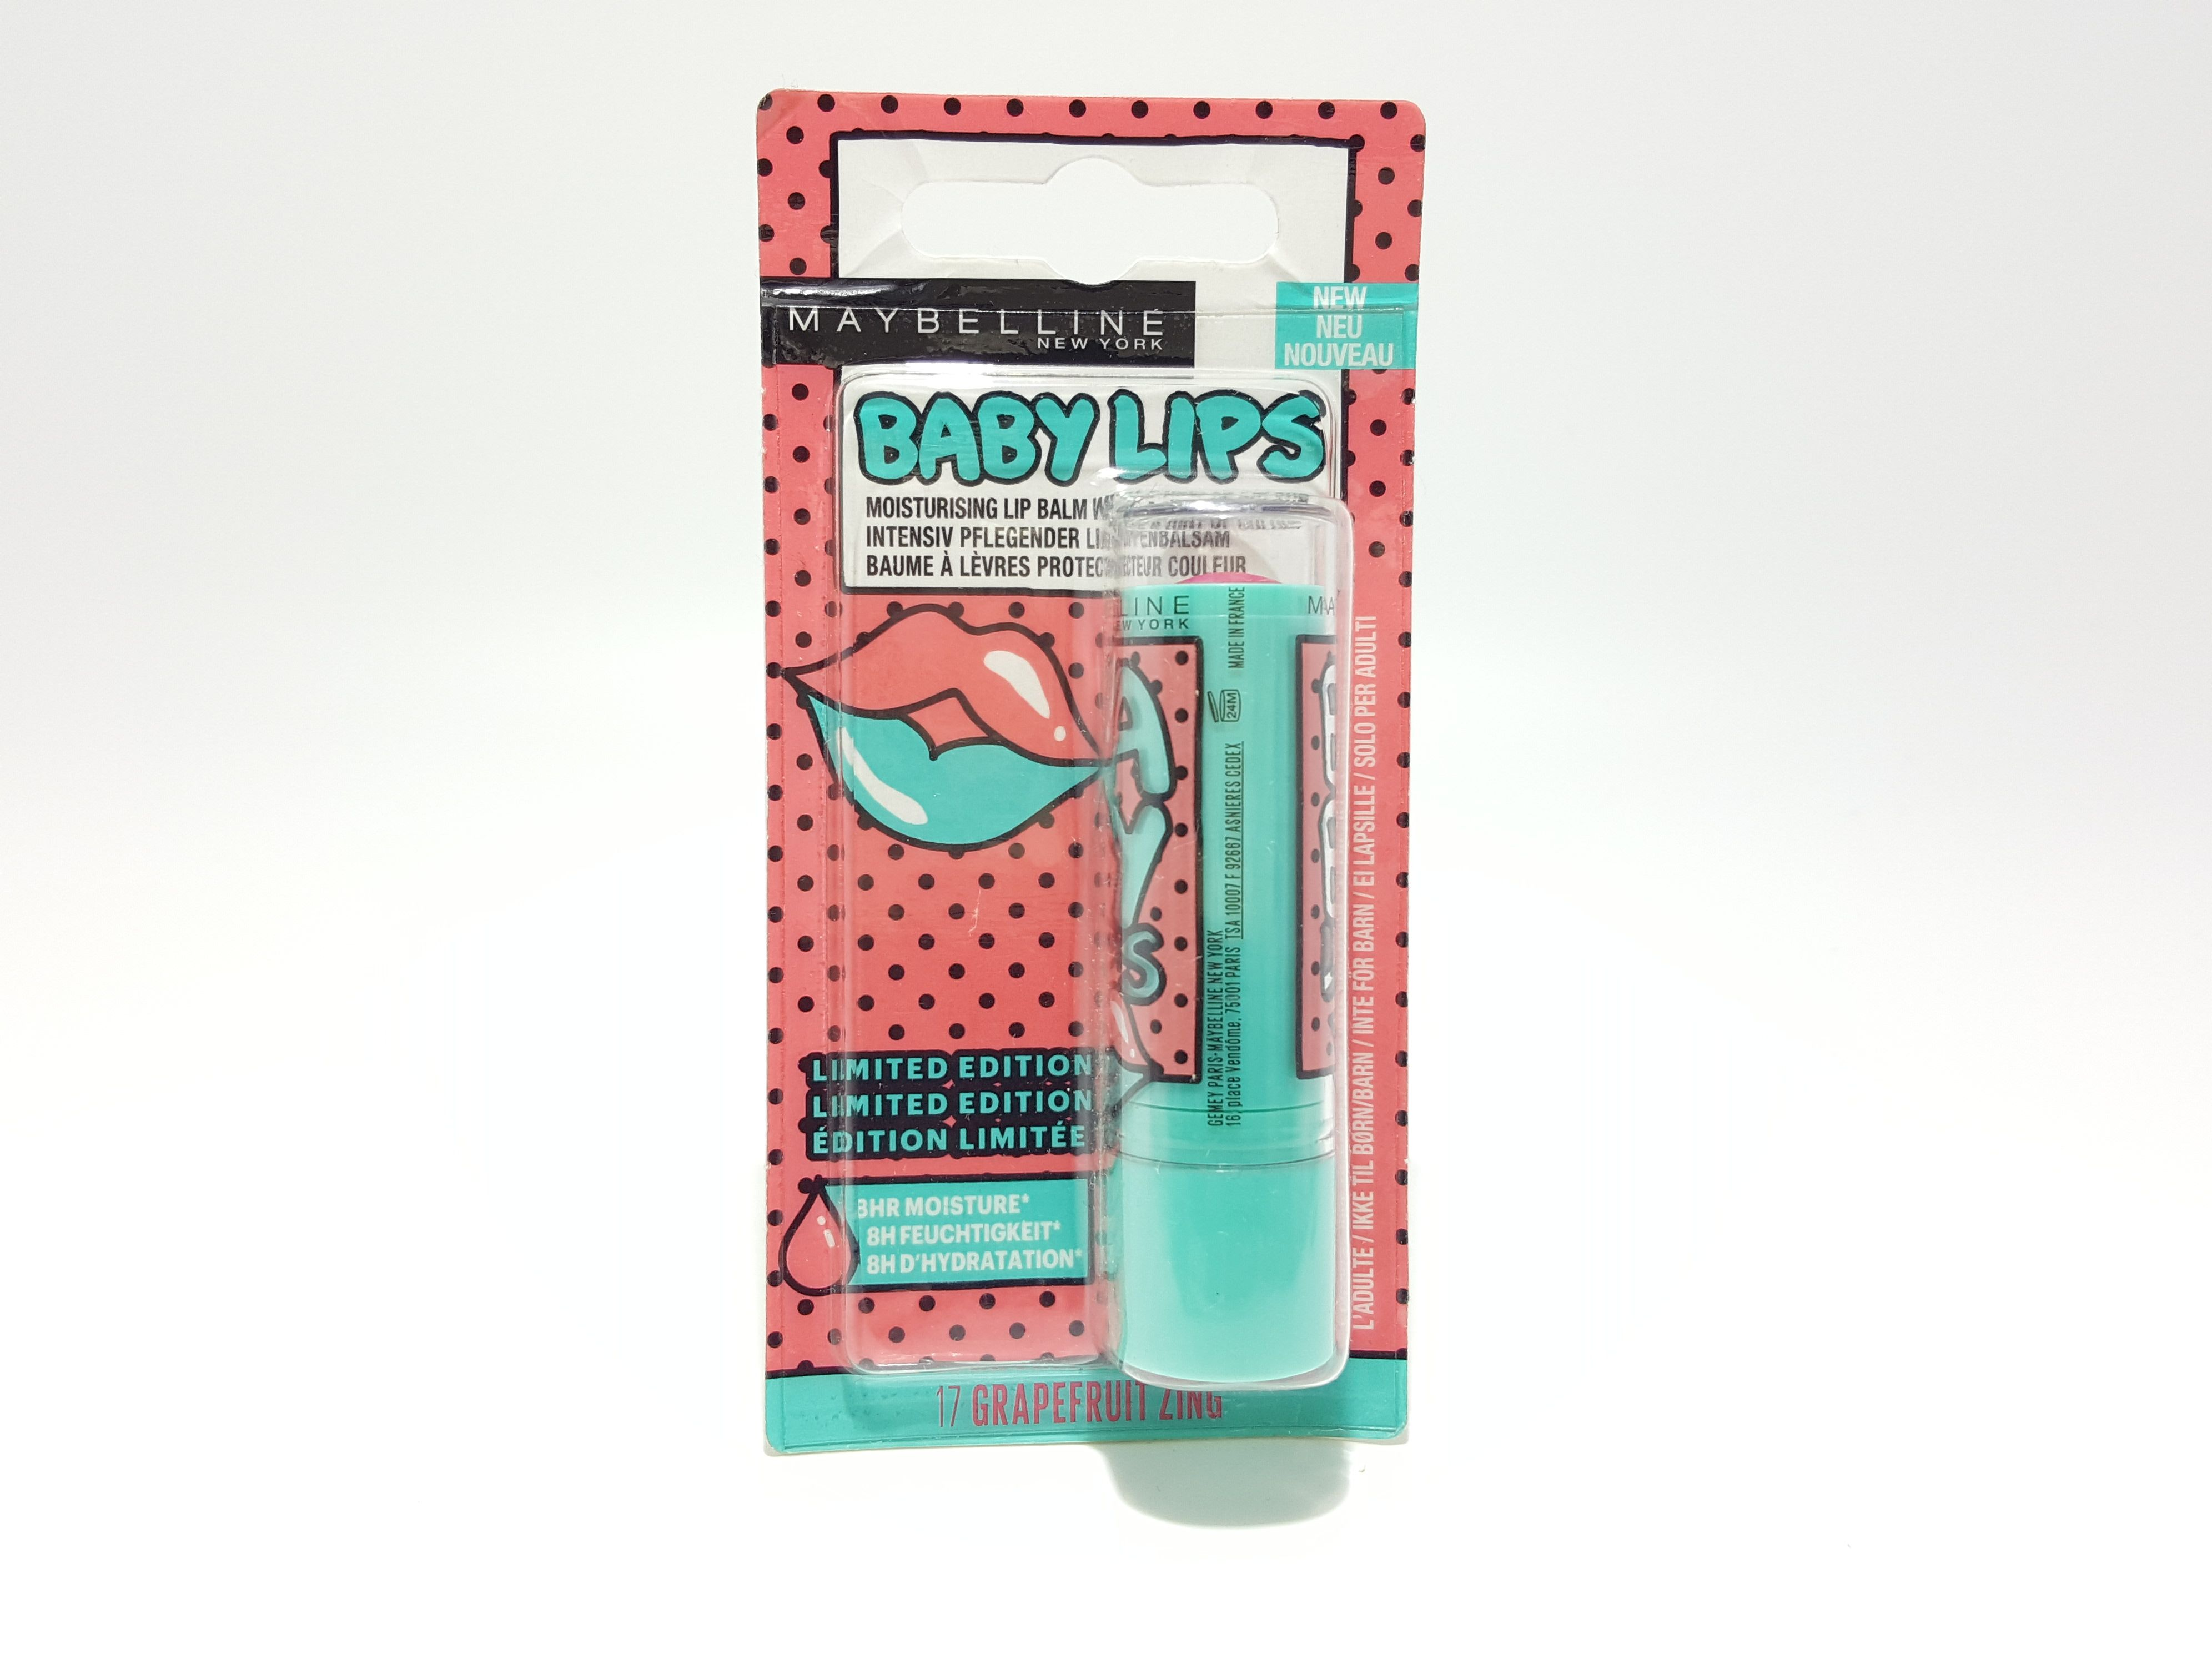 24 x Maybelline Baby Lips Lip Balm Limited Edition - 17 Grapefruit Zing